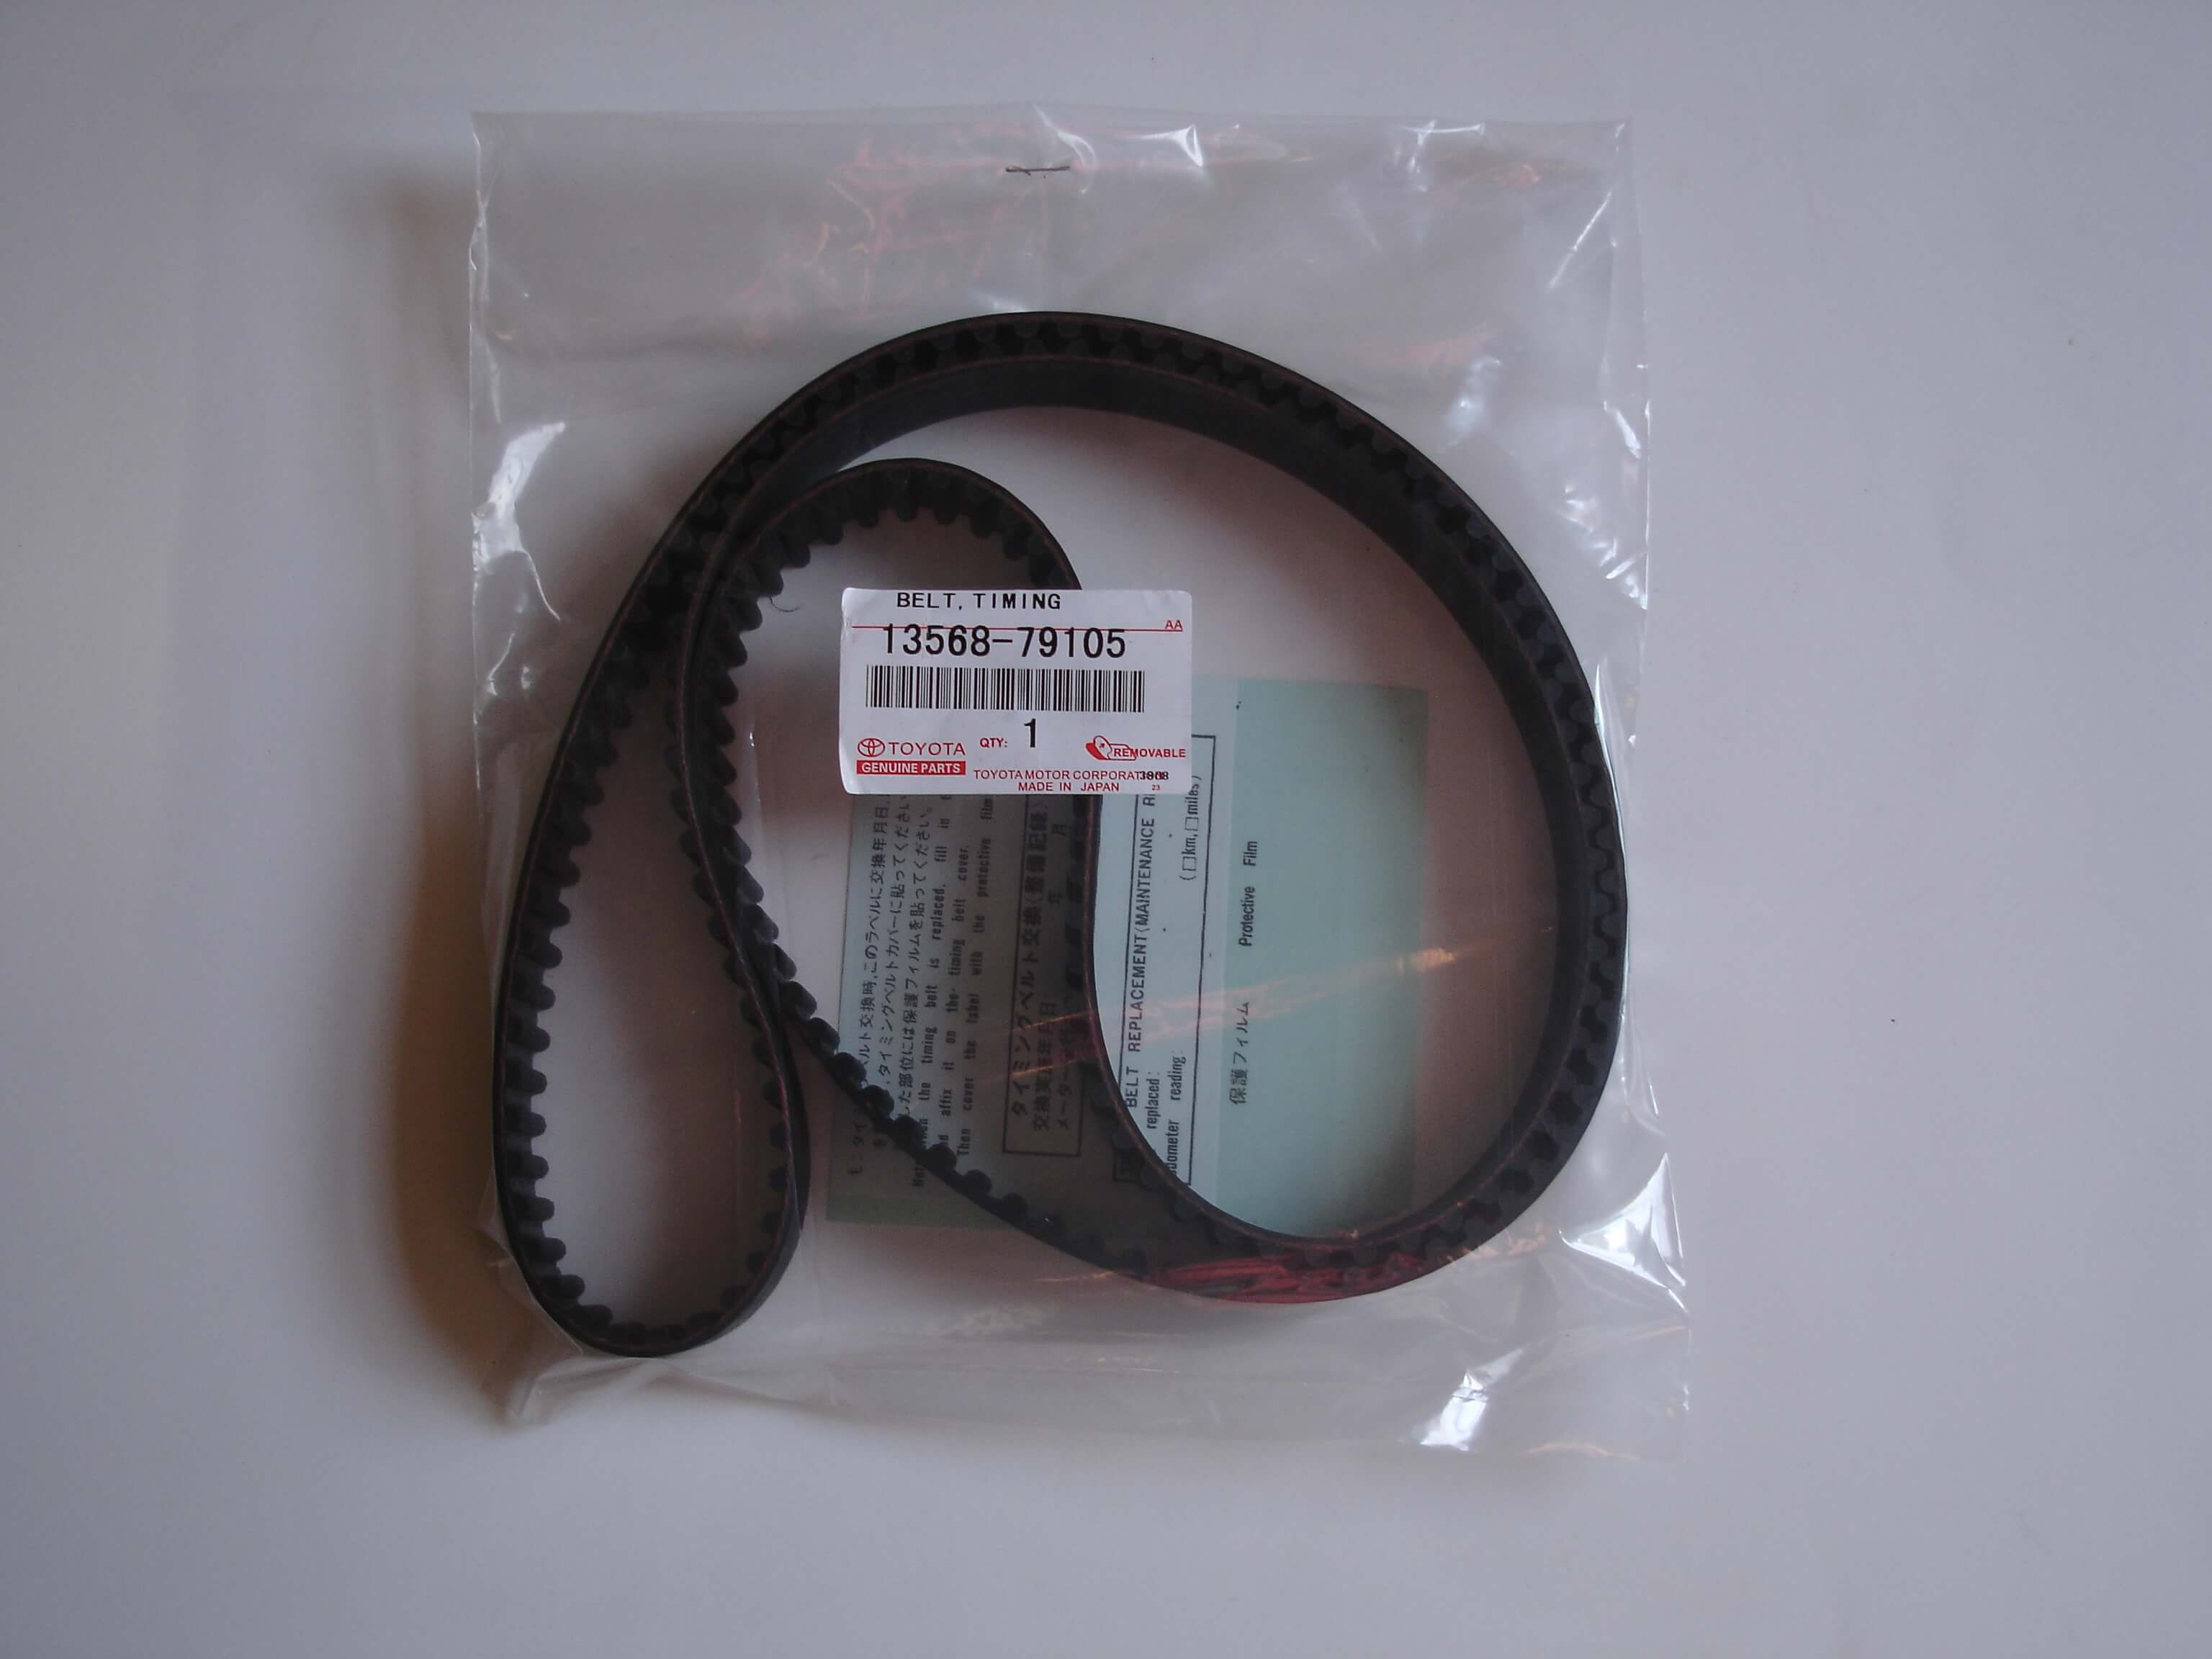 Toyota OEM Timing belt, 3SGTE 3RD GEN 13568-79105